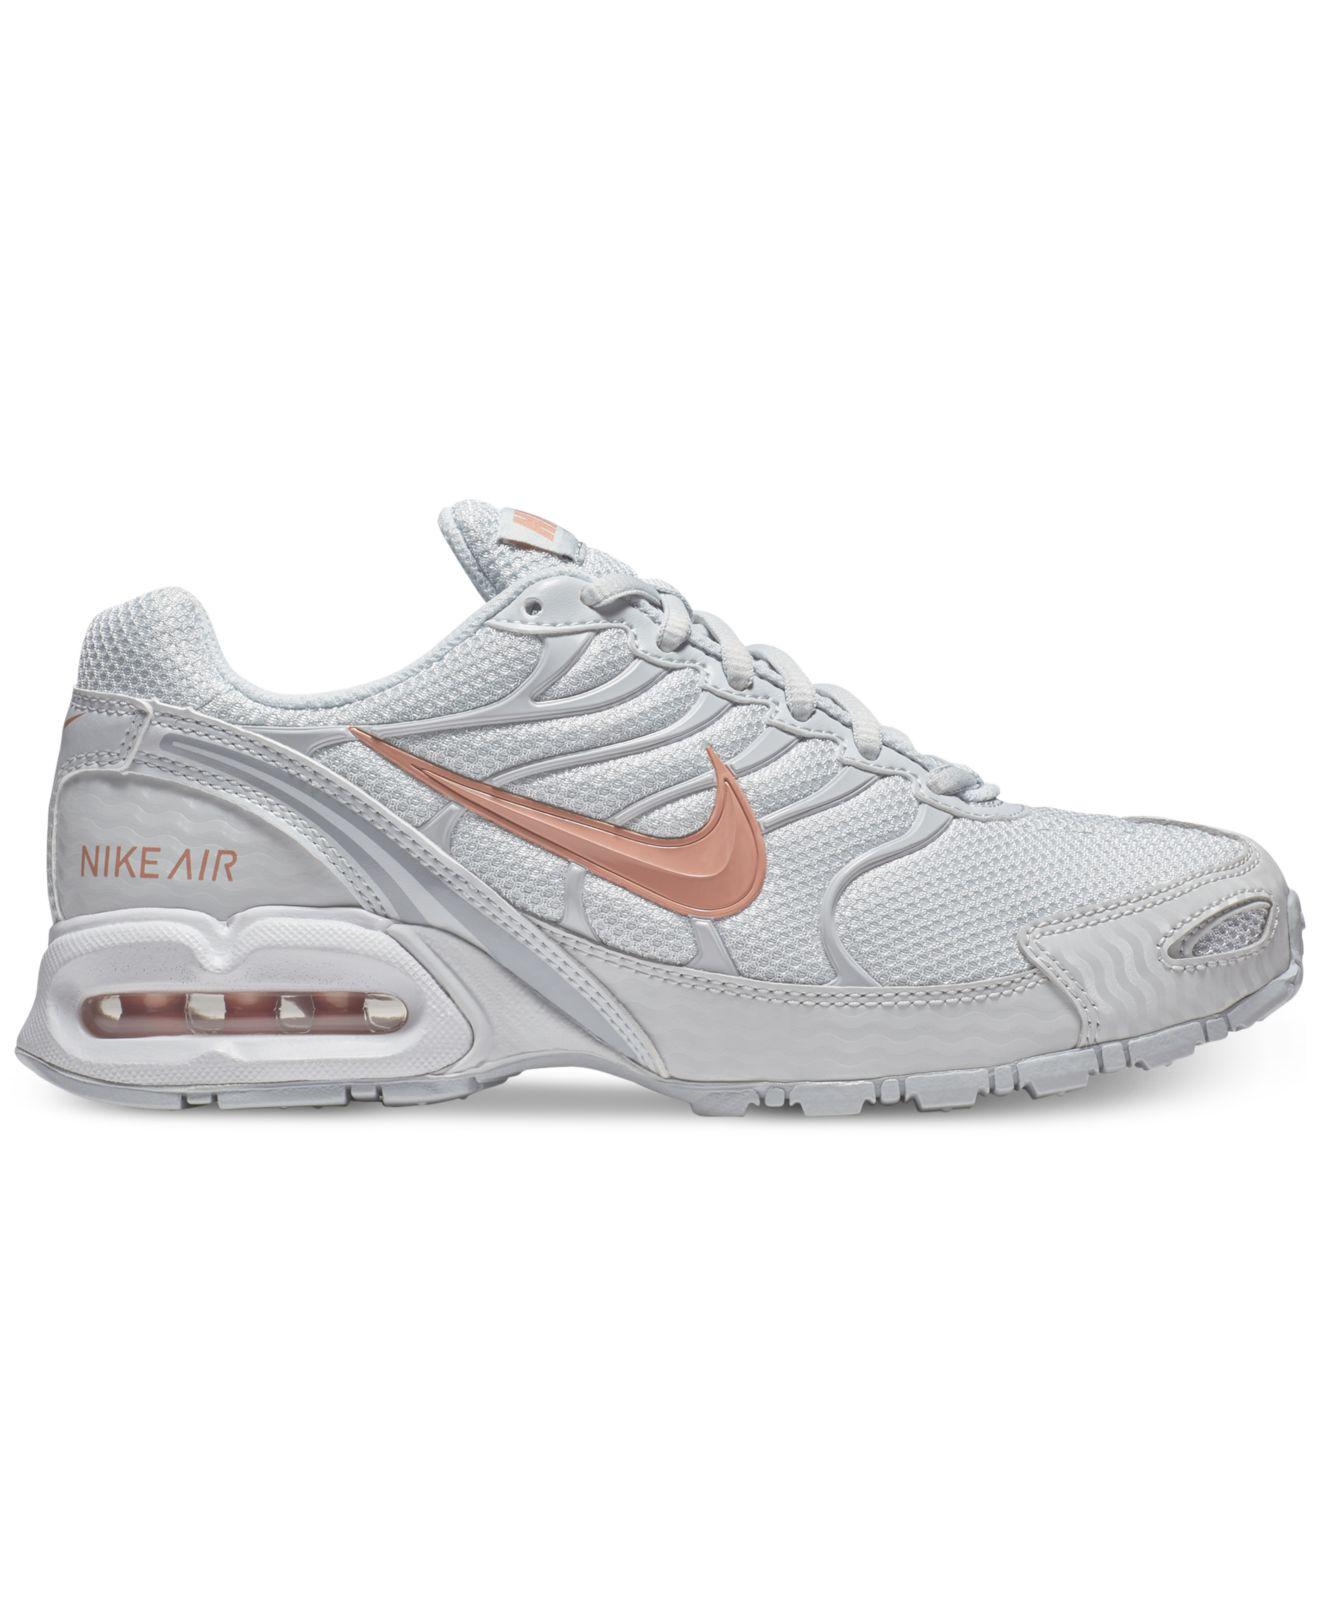 2f0a92e1dbd62 ... sweden lyst nike air max torch 4 running sneakers from finish line in  gray 22503 4ccd2